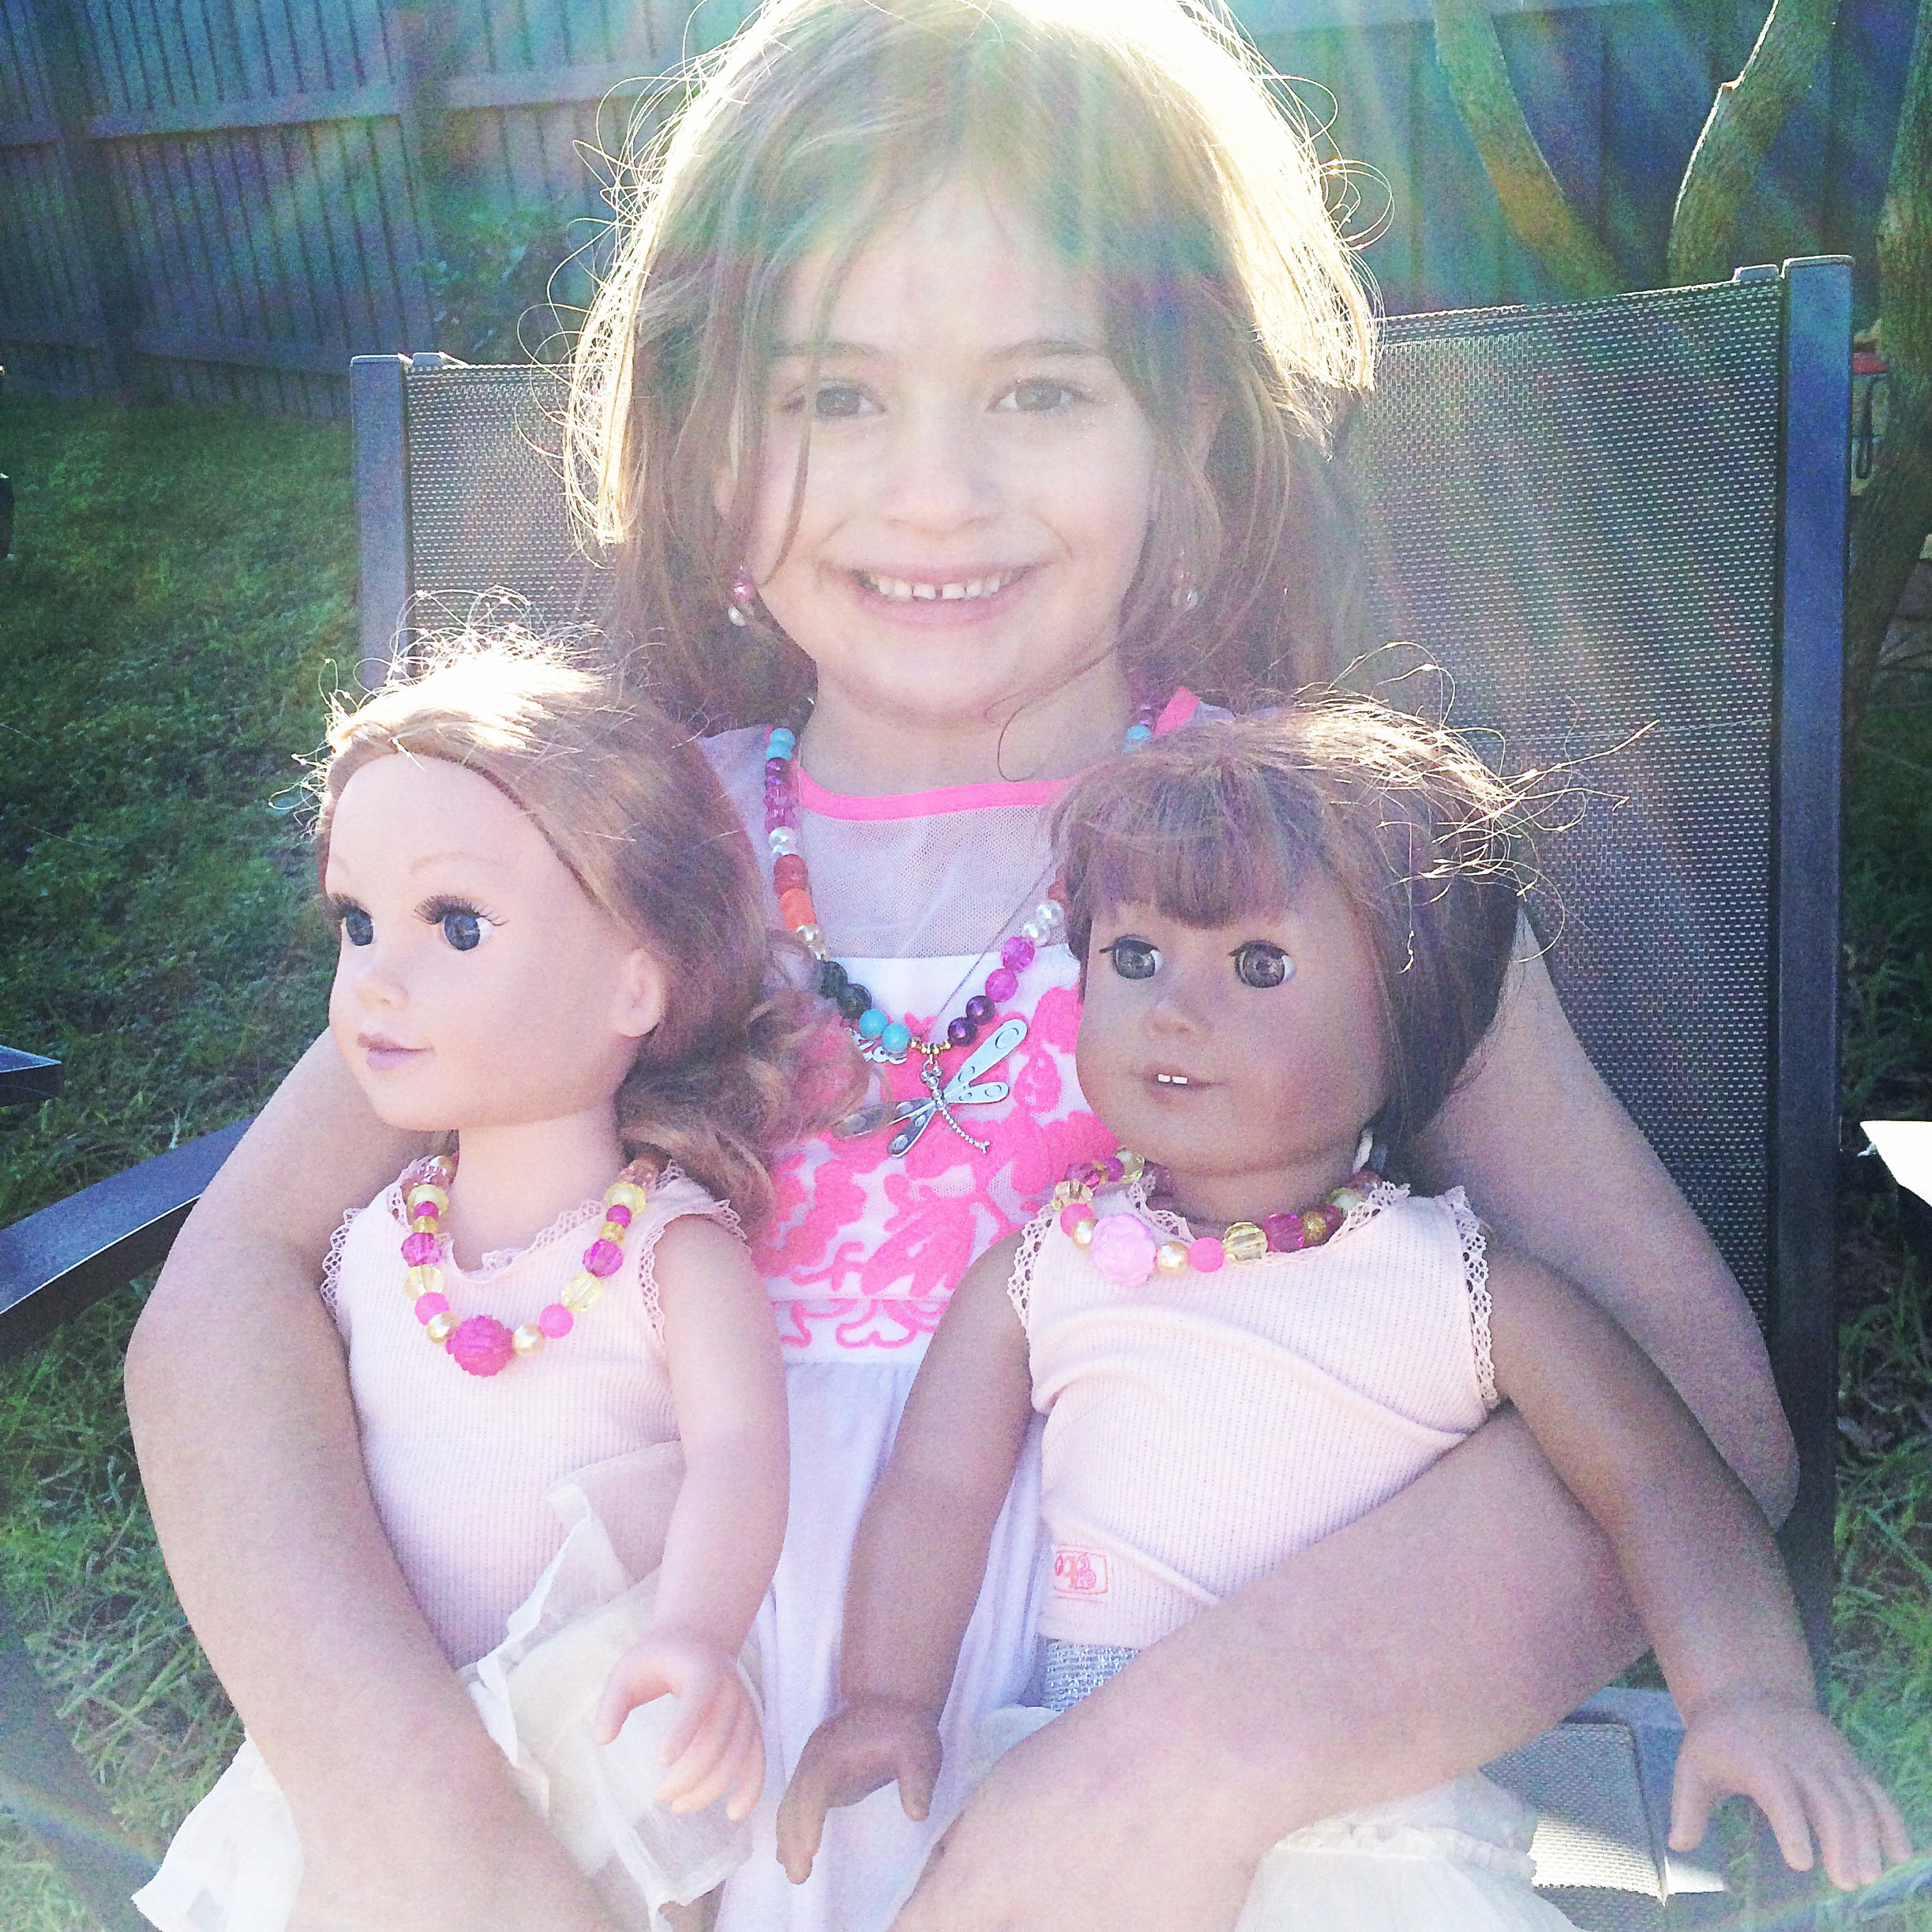 New party: a girl and her doll